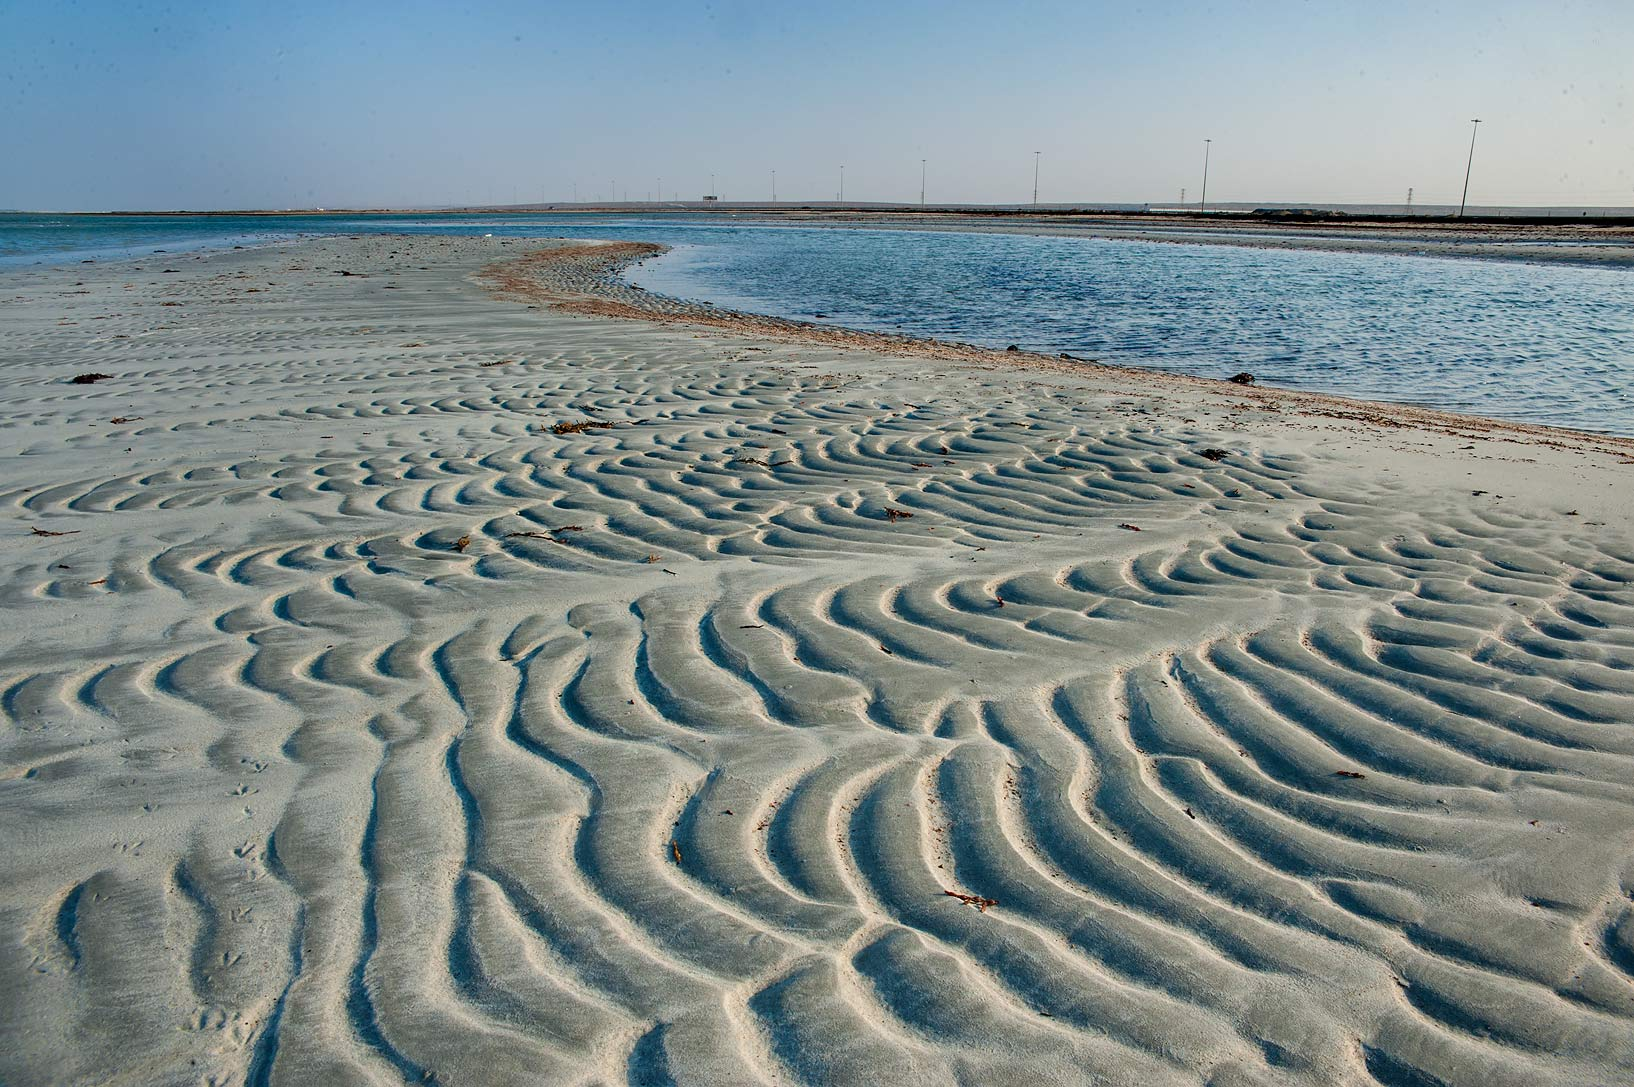 Sand ripples on a beach in Abu Samra, near the border. Southern Qatar